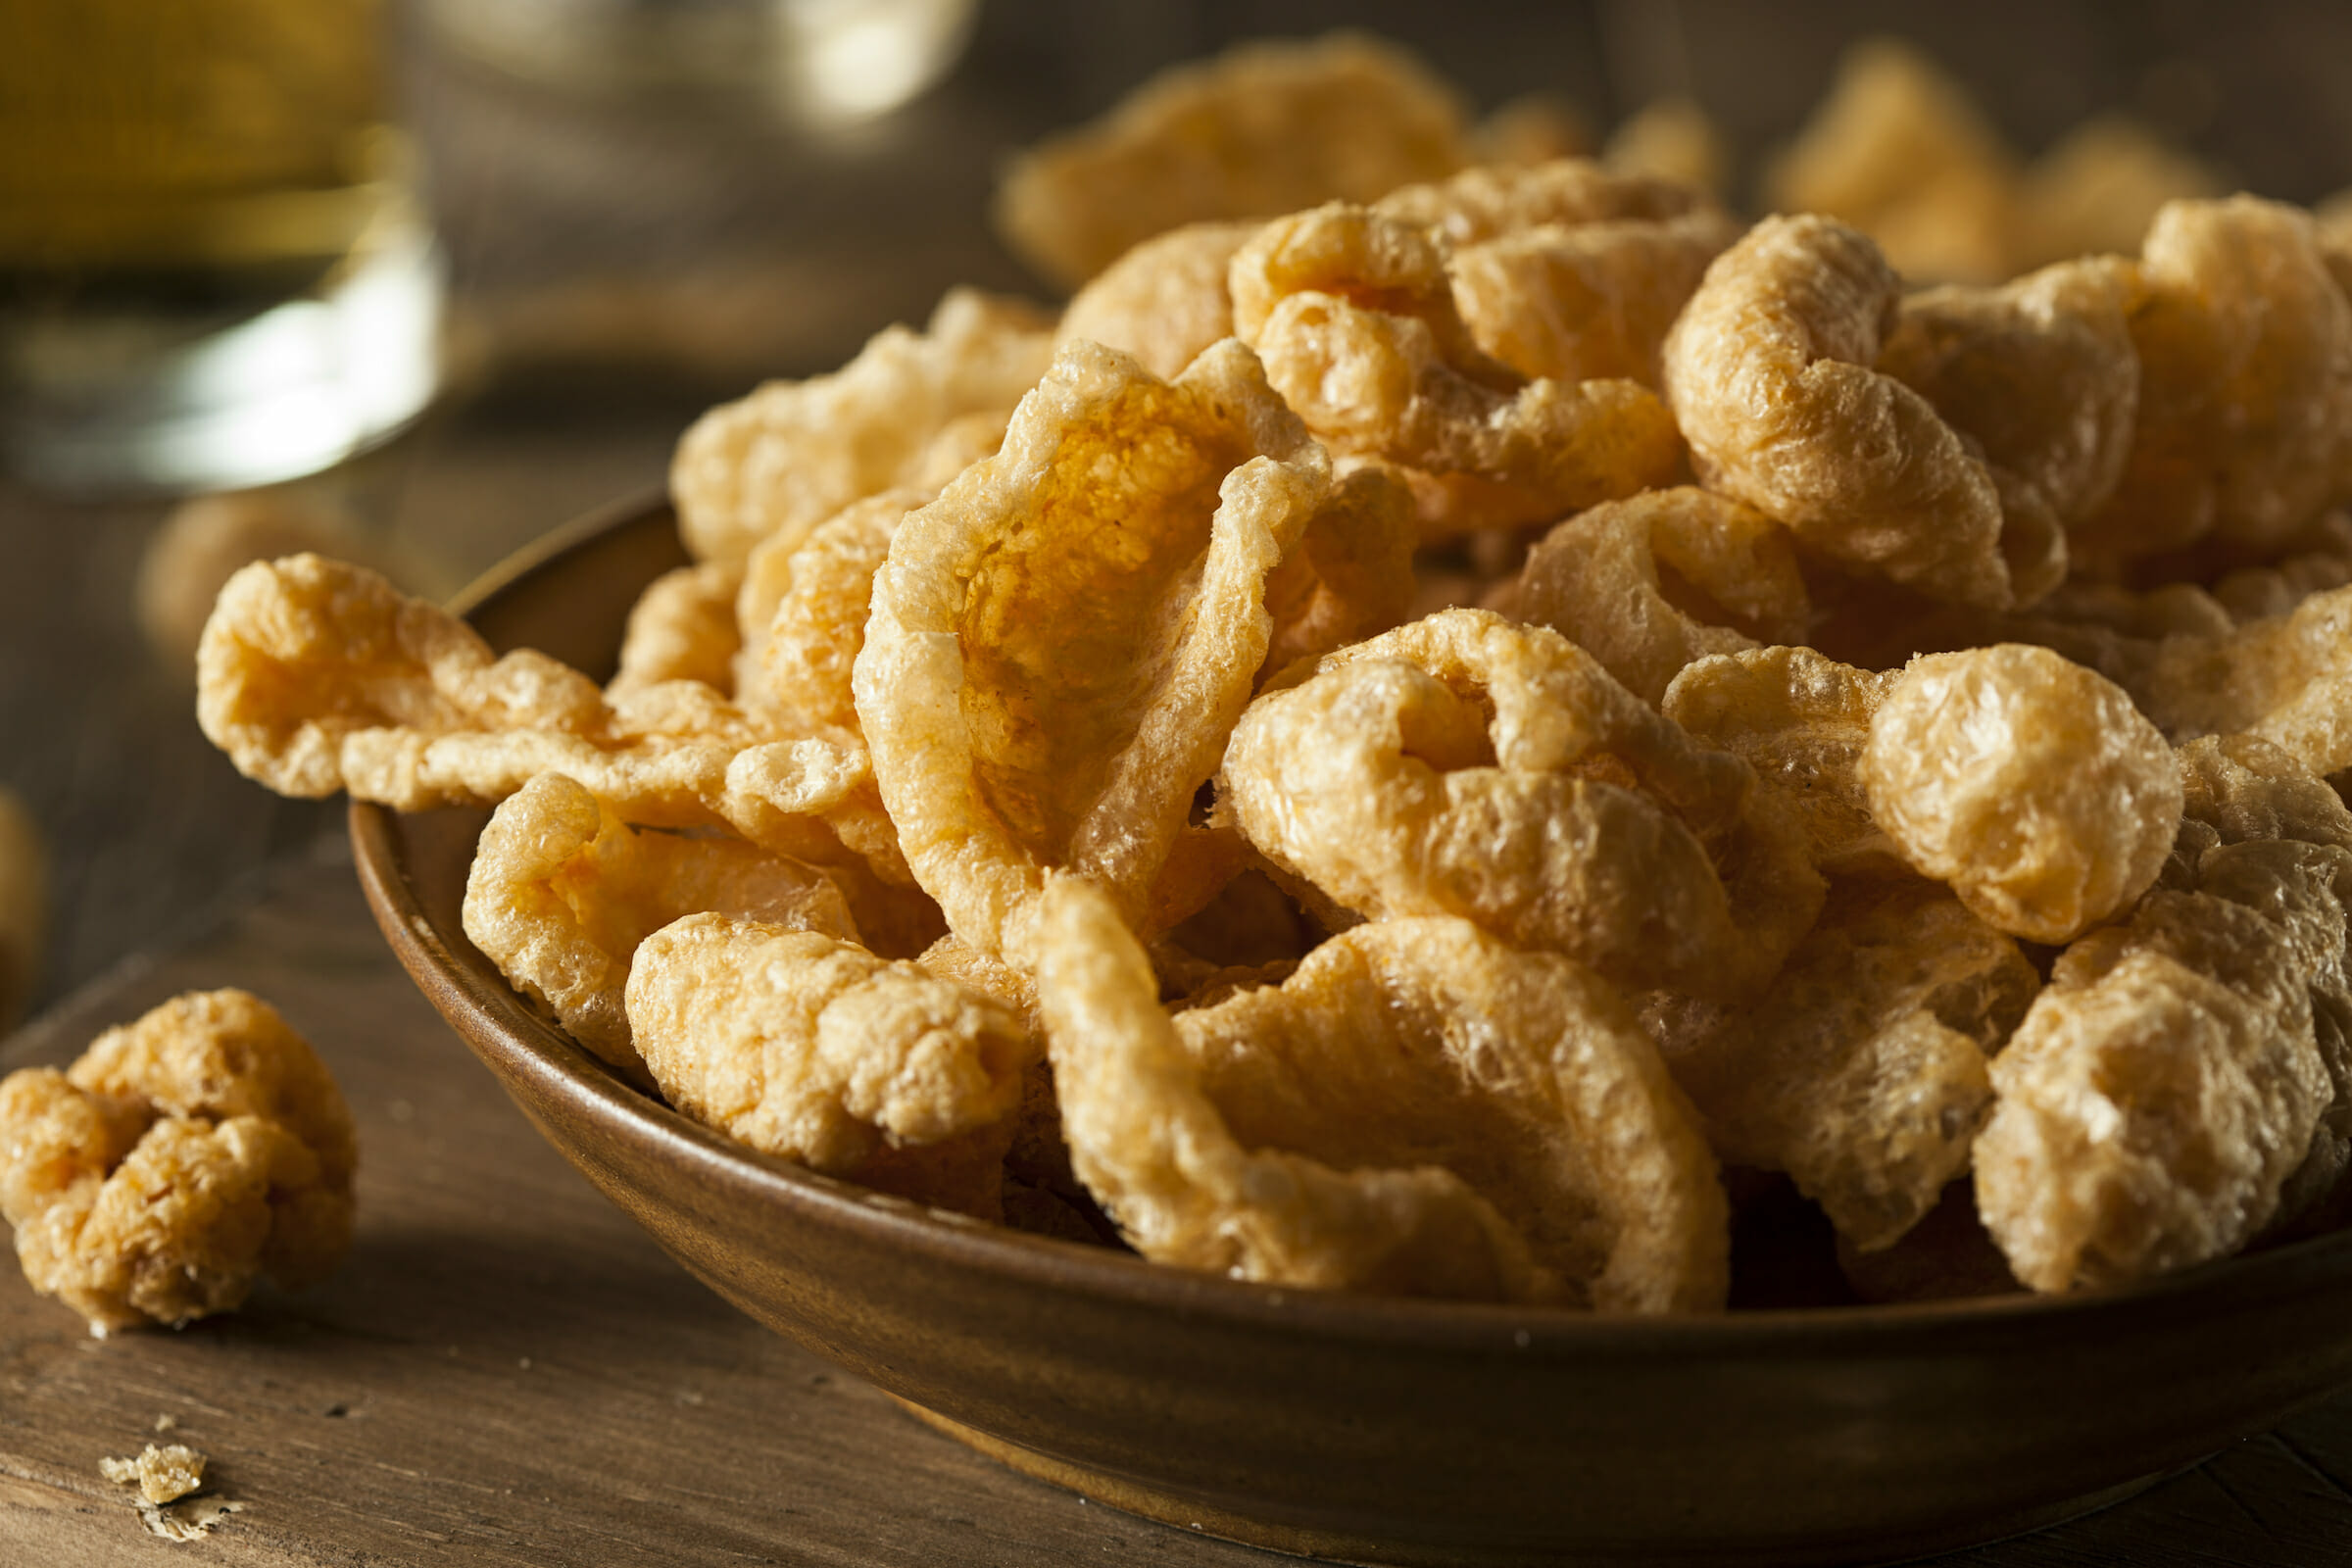 Why Fried Pork Skins (Chicharrones) Might Be The Perfect Keto Snack